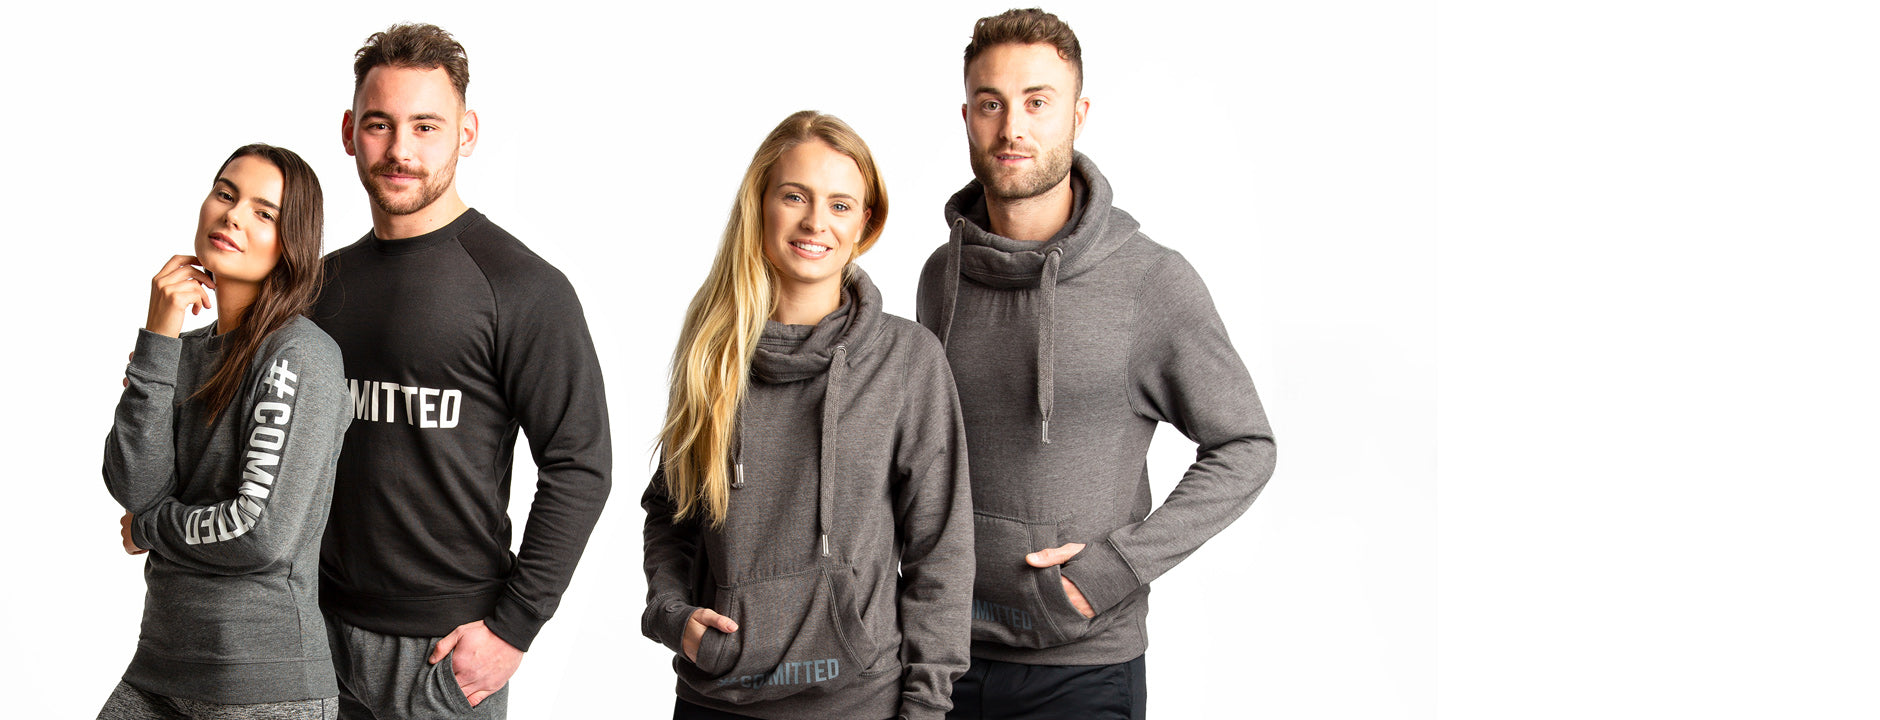 Committed Clothing Company | Unisex